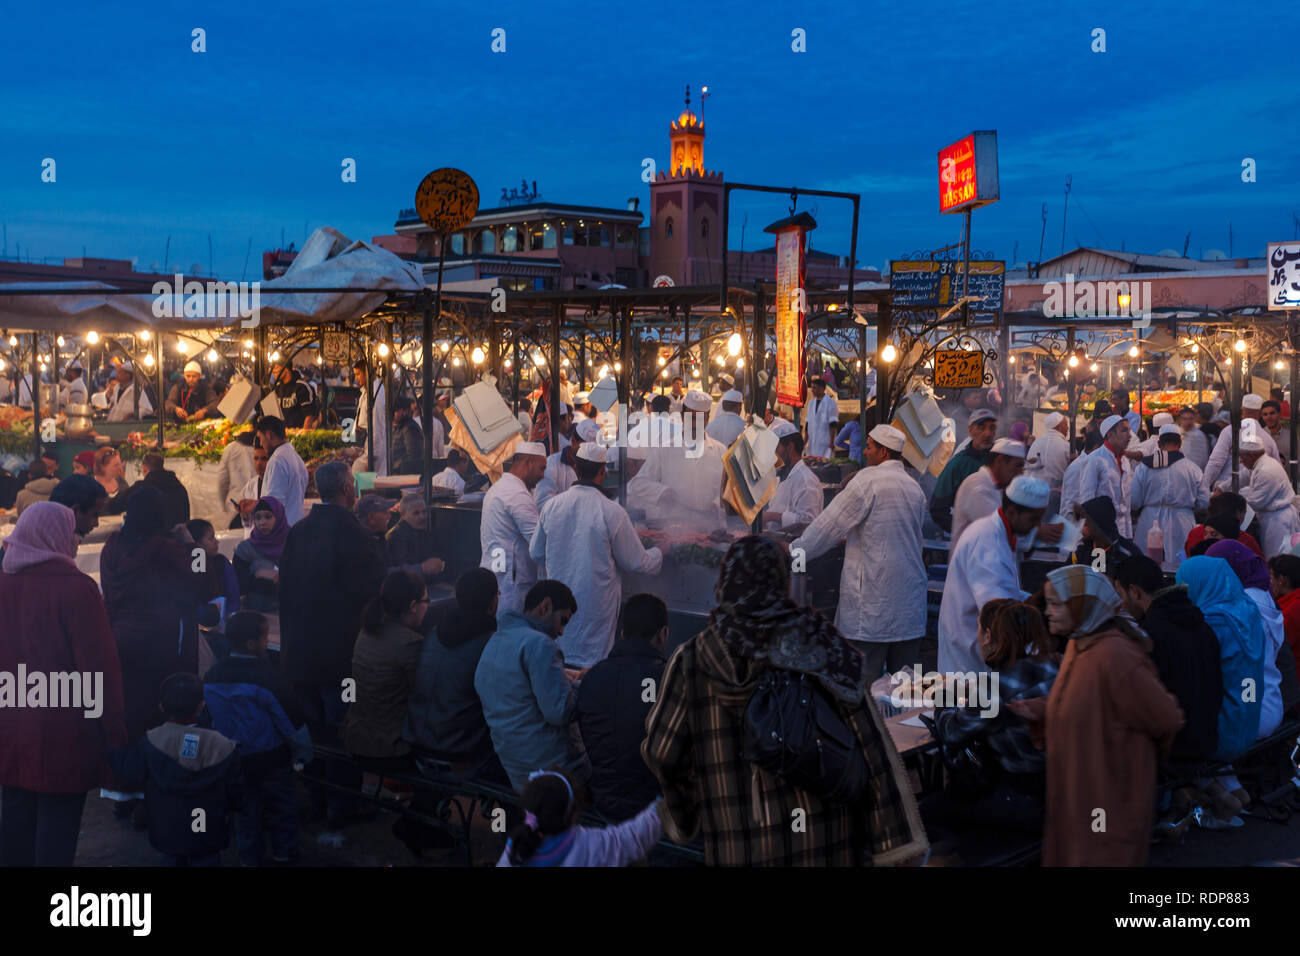 Busy chefs an servers provide dinner for families and tourists  at food market stalls in Marrakesh - Stock Image